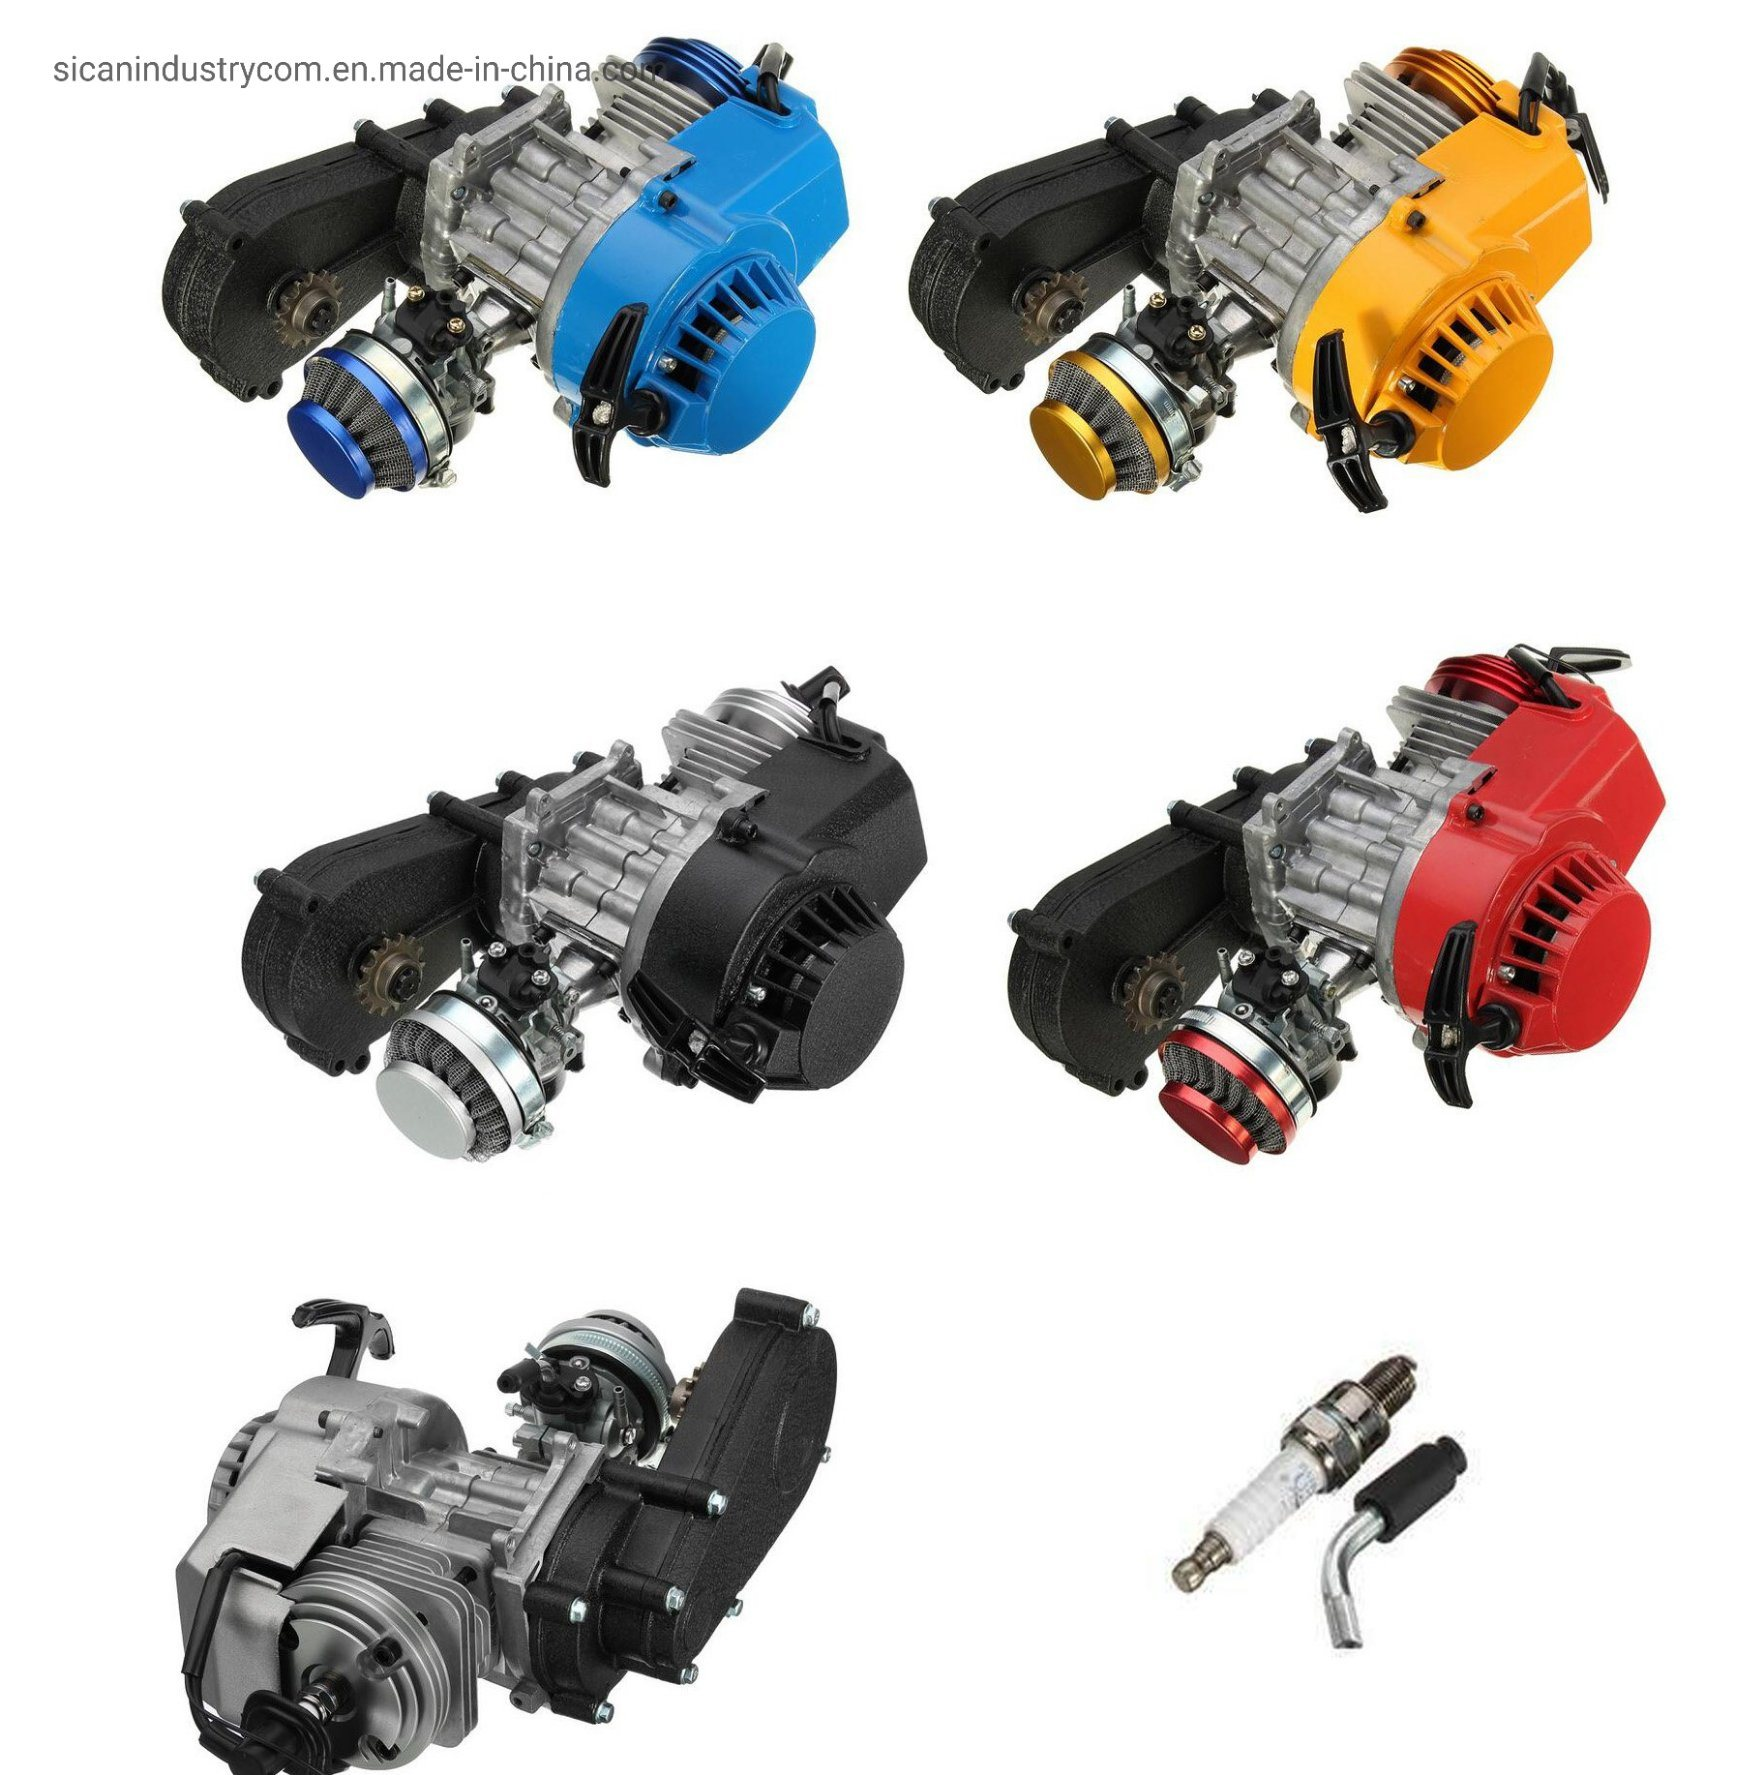 hight resolution of china engine 49cc engine 49cc manufacturers suppliers price made in china com